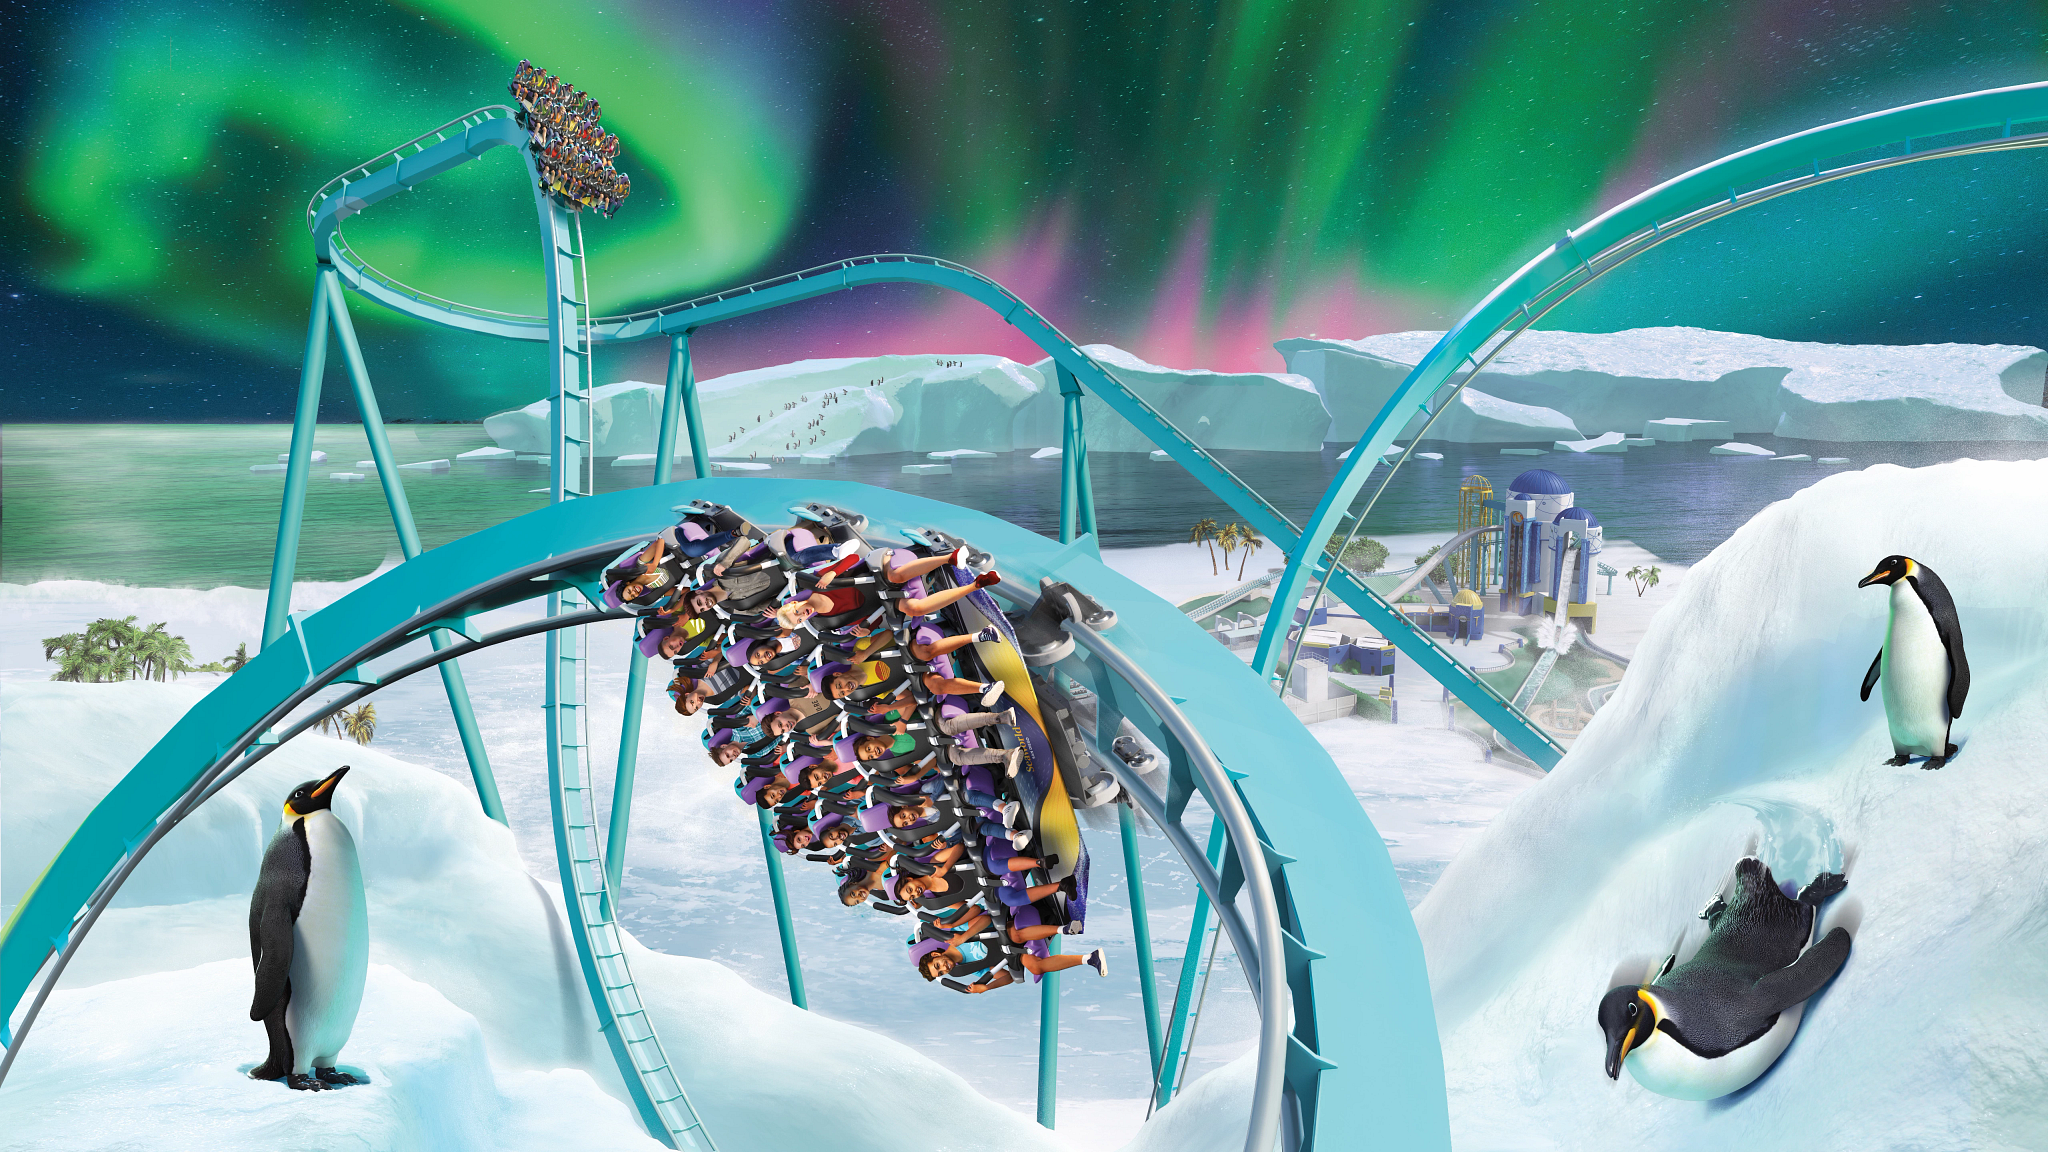 Highly anticipated roller coasters planned for 2021